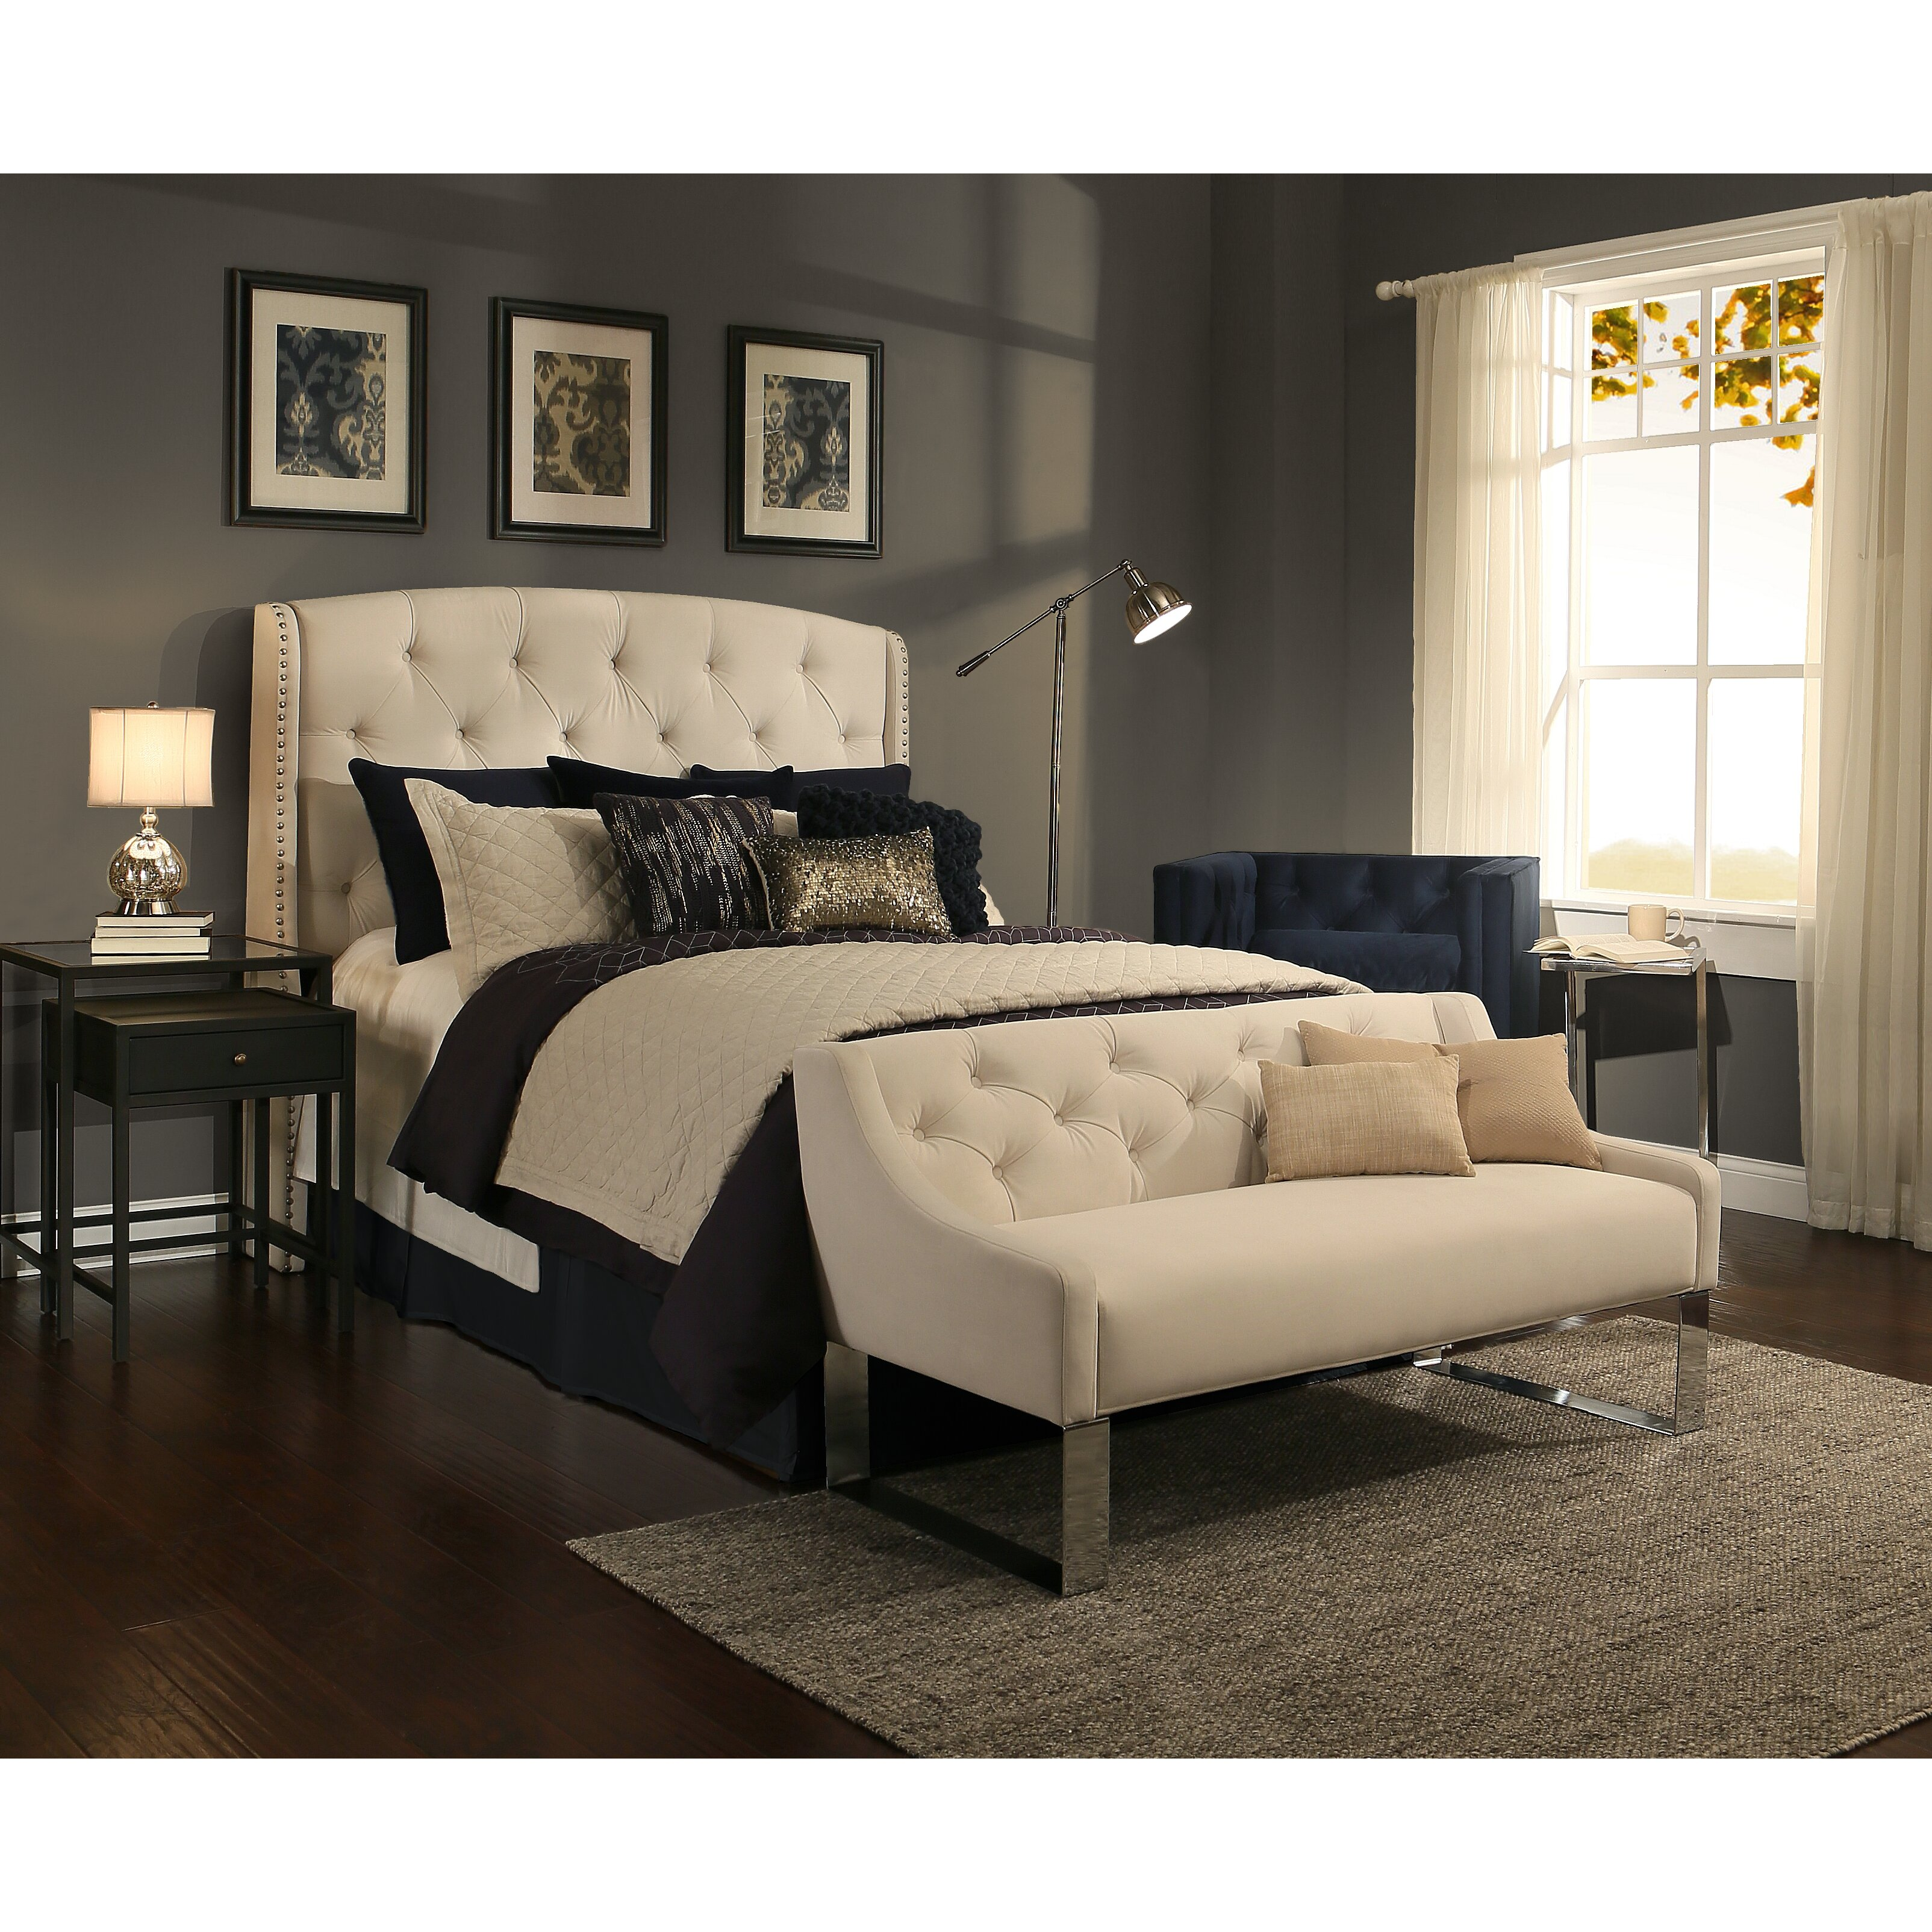 Upholstered Bedroom Bench: RepublicDesignHouse Peyton Upholstered Headboard And